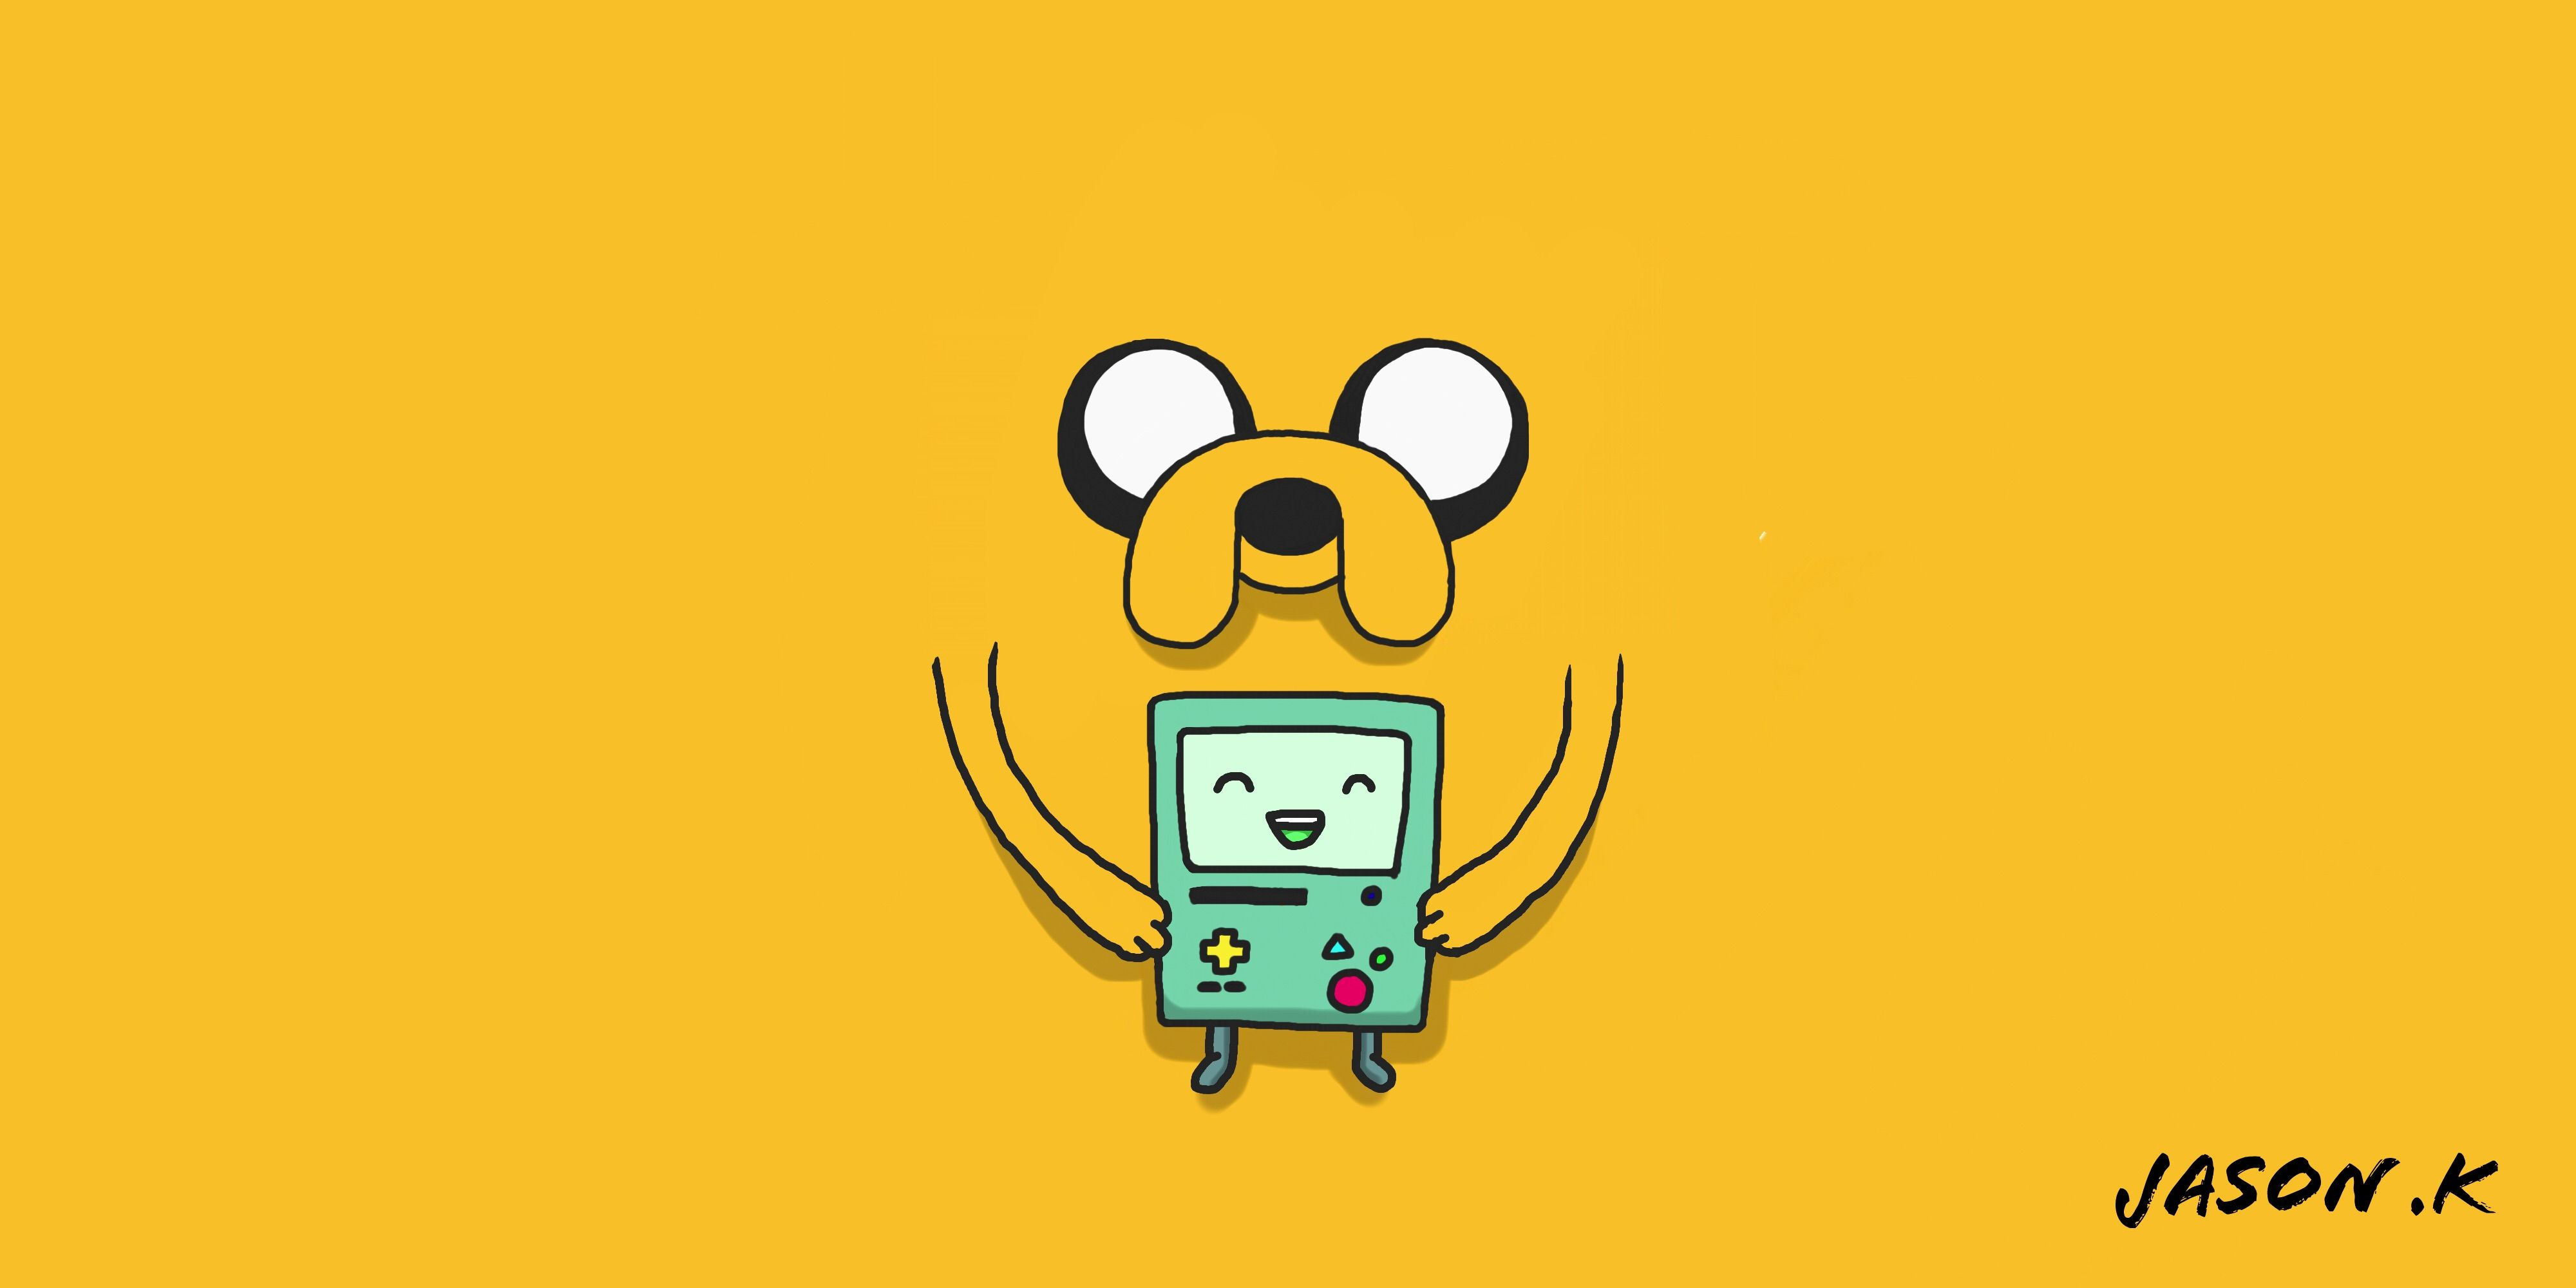 Adventure Time Adventure Time Wallpaper 1366x768 Adventure Time With Finn And Movie Adventure Time Wallpaper Jake Adventure Time Adventure Time